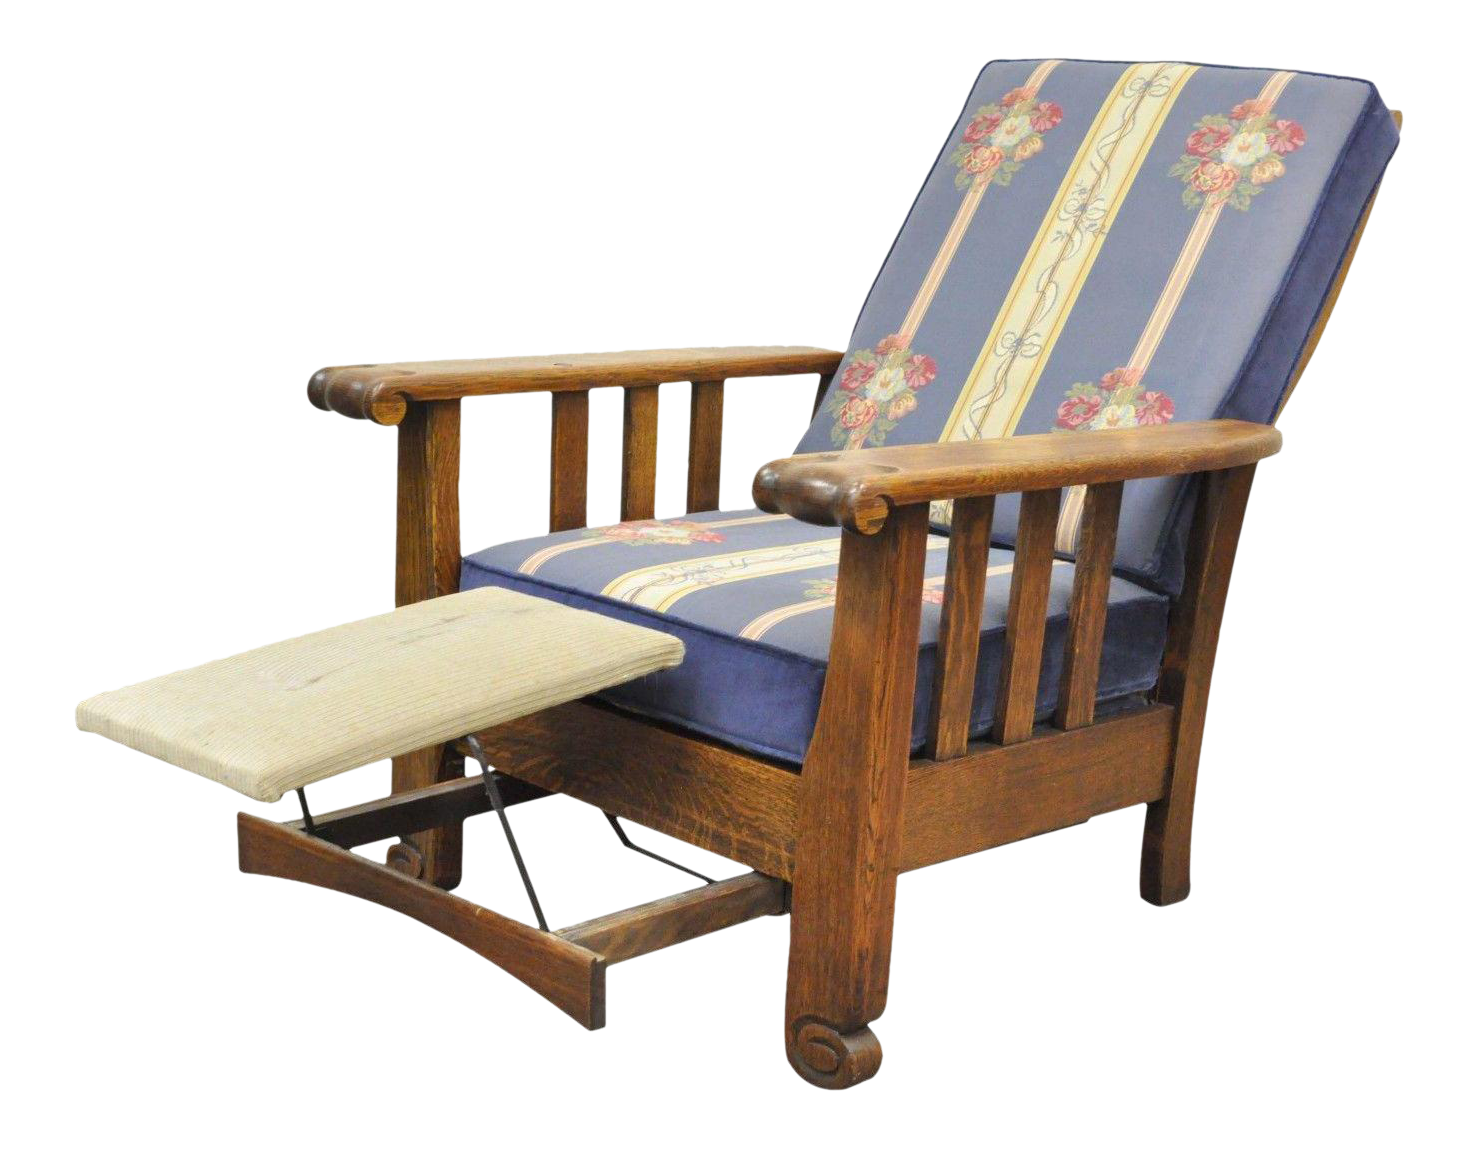 Antique Royal Easy Mission Arts u0026 Crafts Reclining Lounge Morris Chair Recliner  sc 1 st  Chairish & Antique Royal Easy Mission Arts u0026 Crafts Reclining Lounge Morris ...